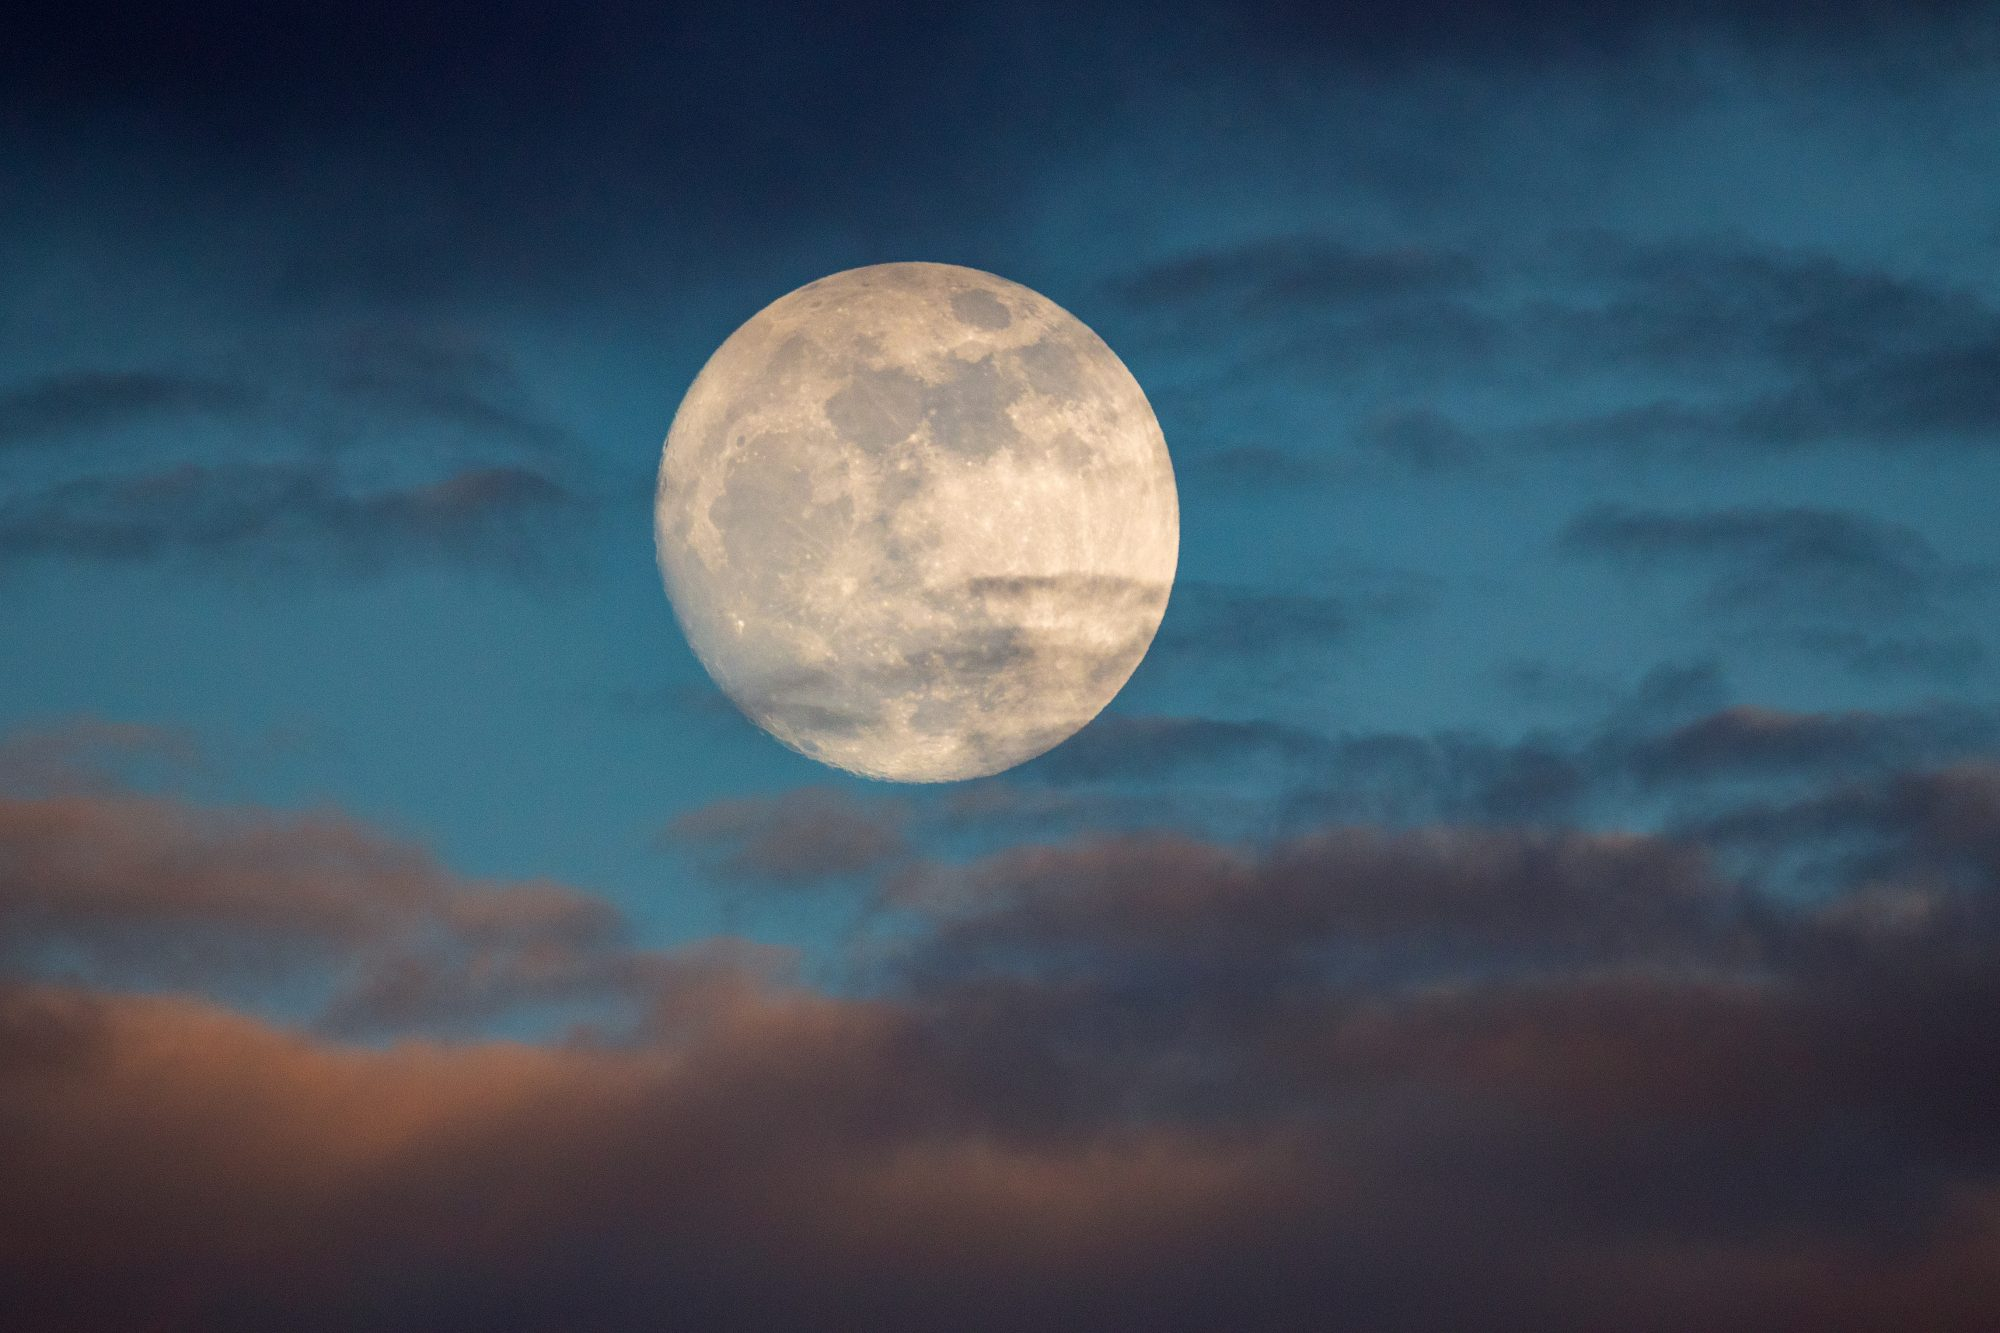 supermoon surrounded by clouds